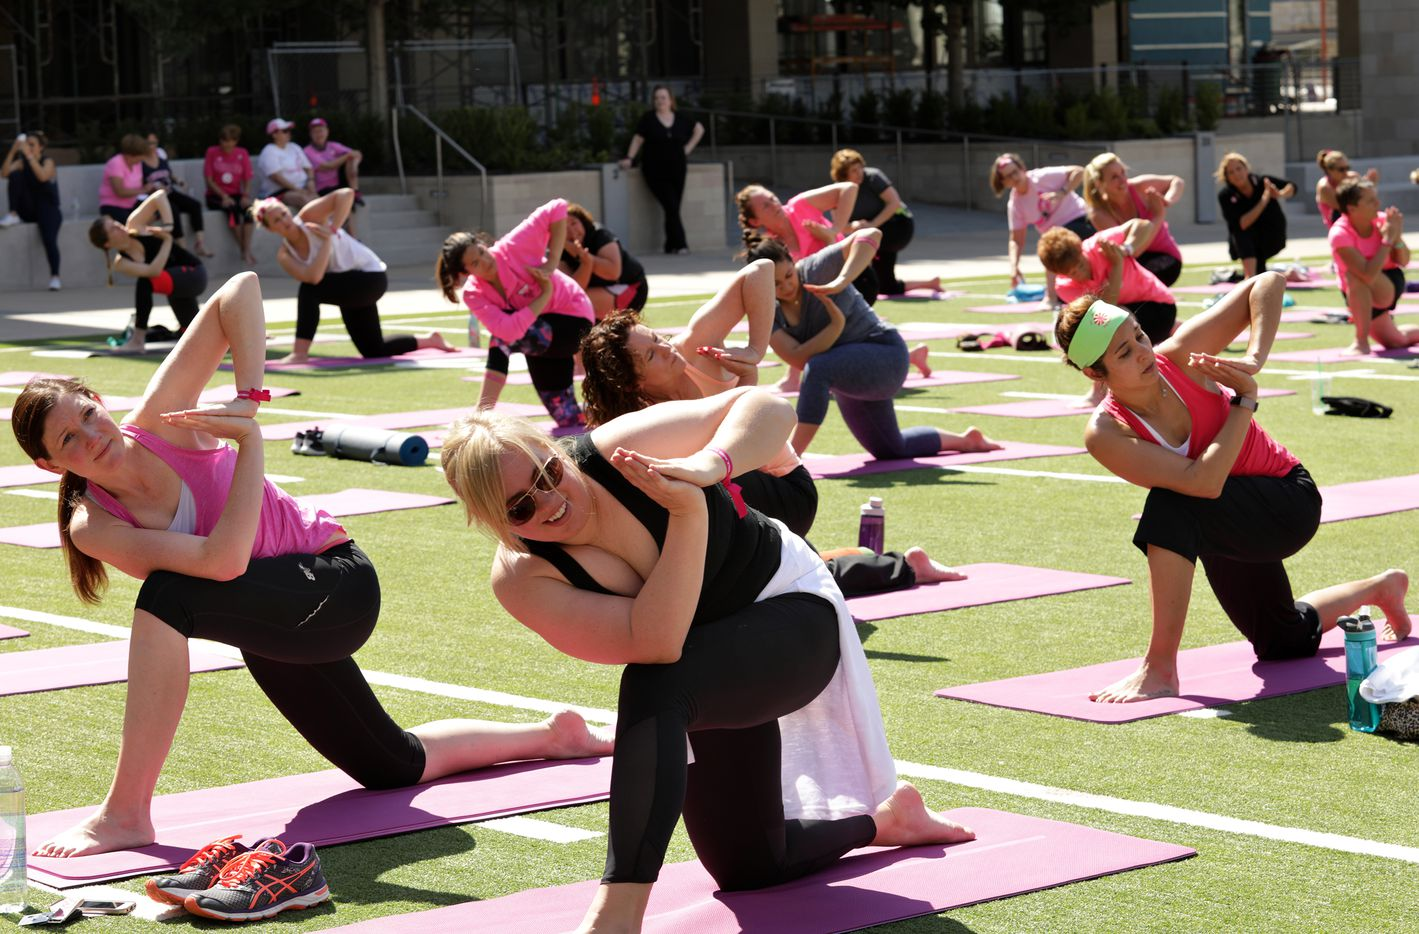 Susan G. Komen supporters participate in project:OM, a cancer research yoga event, held at The Star in Frisco on May 13, 2017.